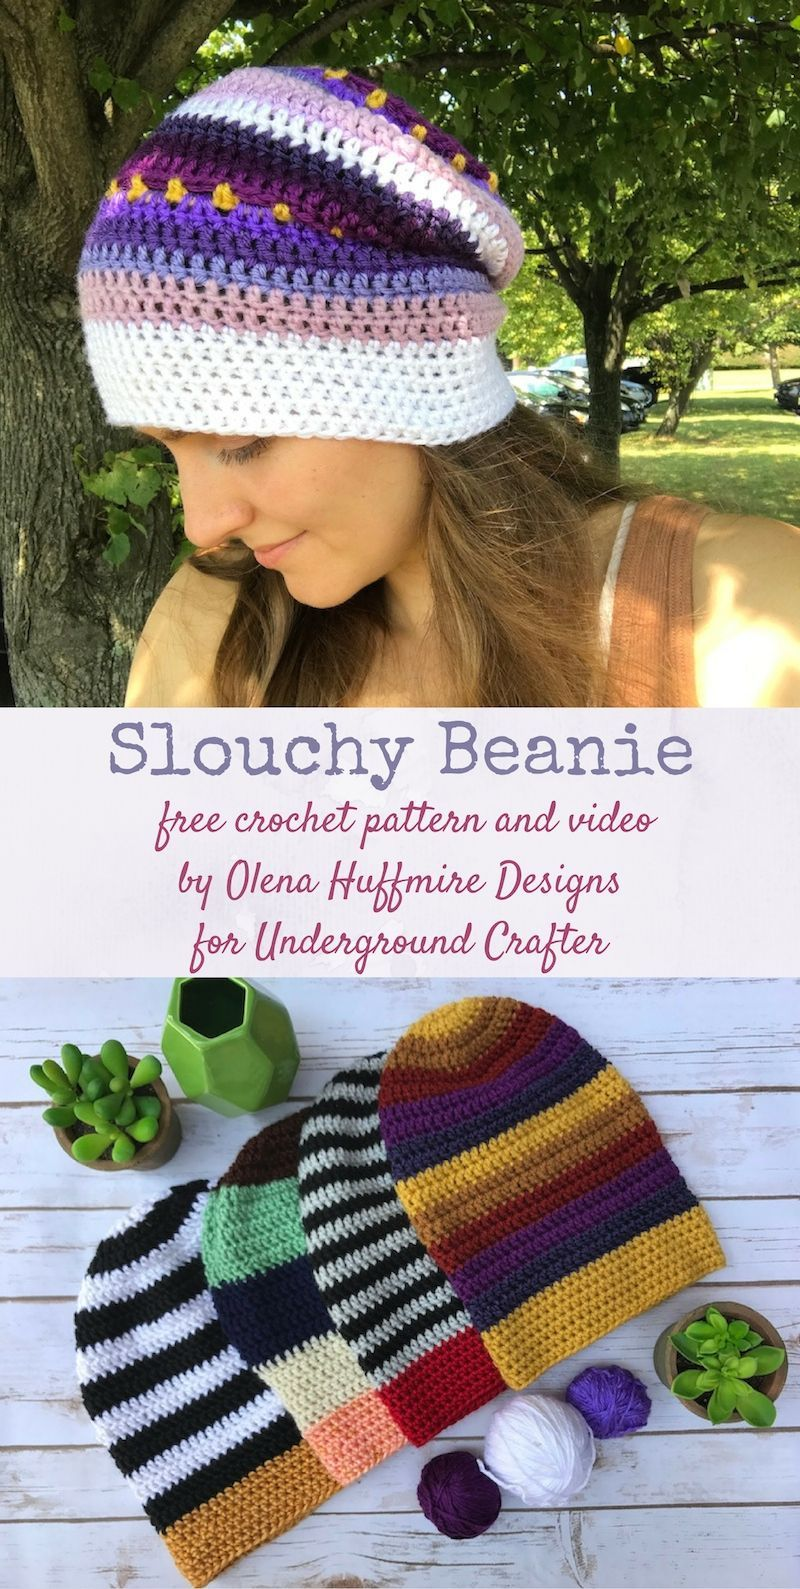 1a54fd600e2 Free crochet pattern  Slouchy Beanie with video by Olena Huffmire Designs  for Underground Crafter  crochethats